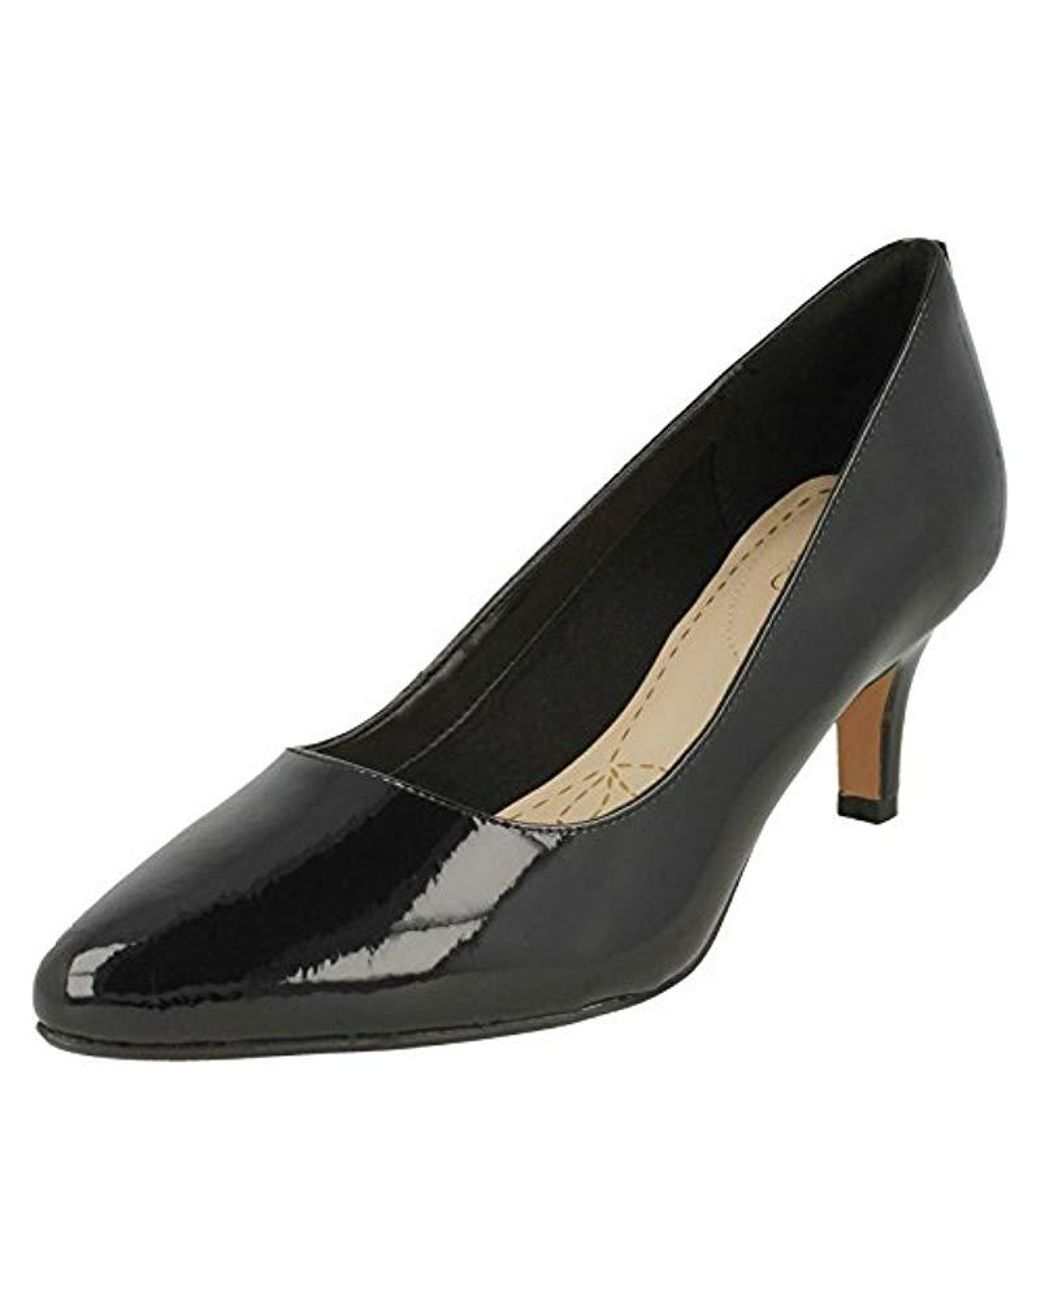 e2c43b94 Clarks Isidora Faye S Wide Dress Court Shoes 4 Black Patent in Black ...